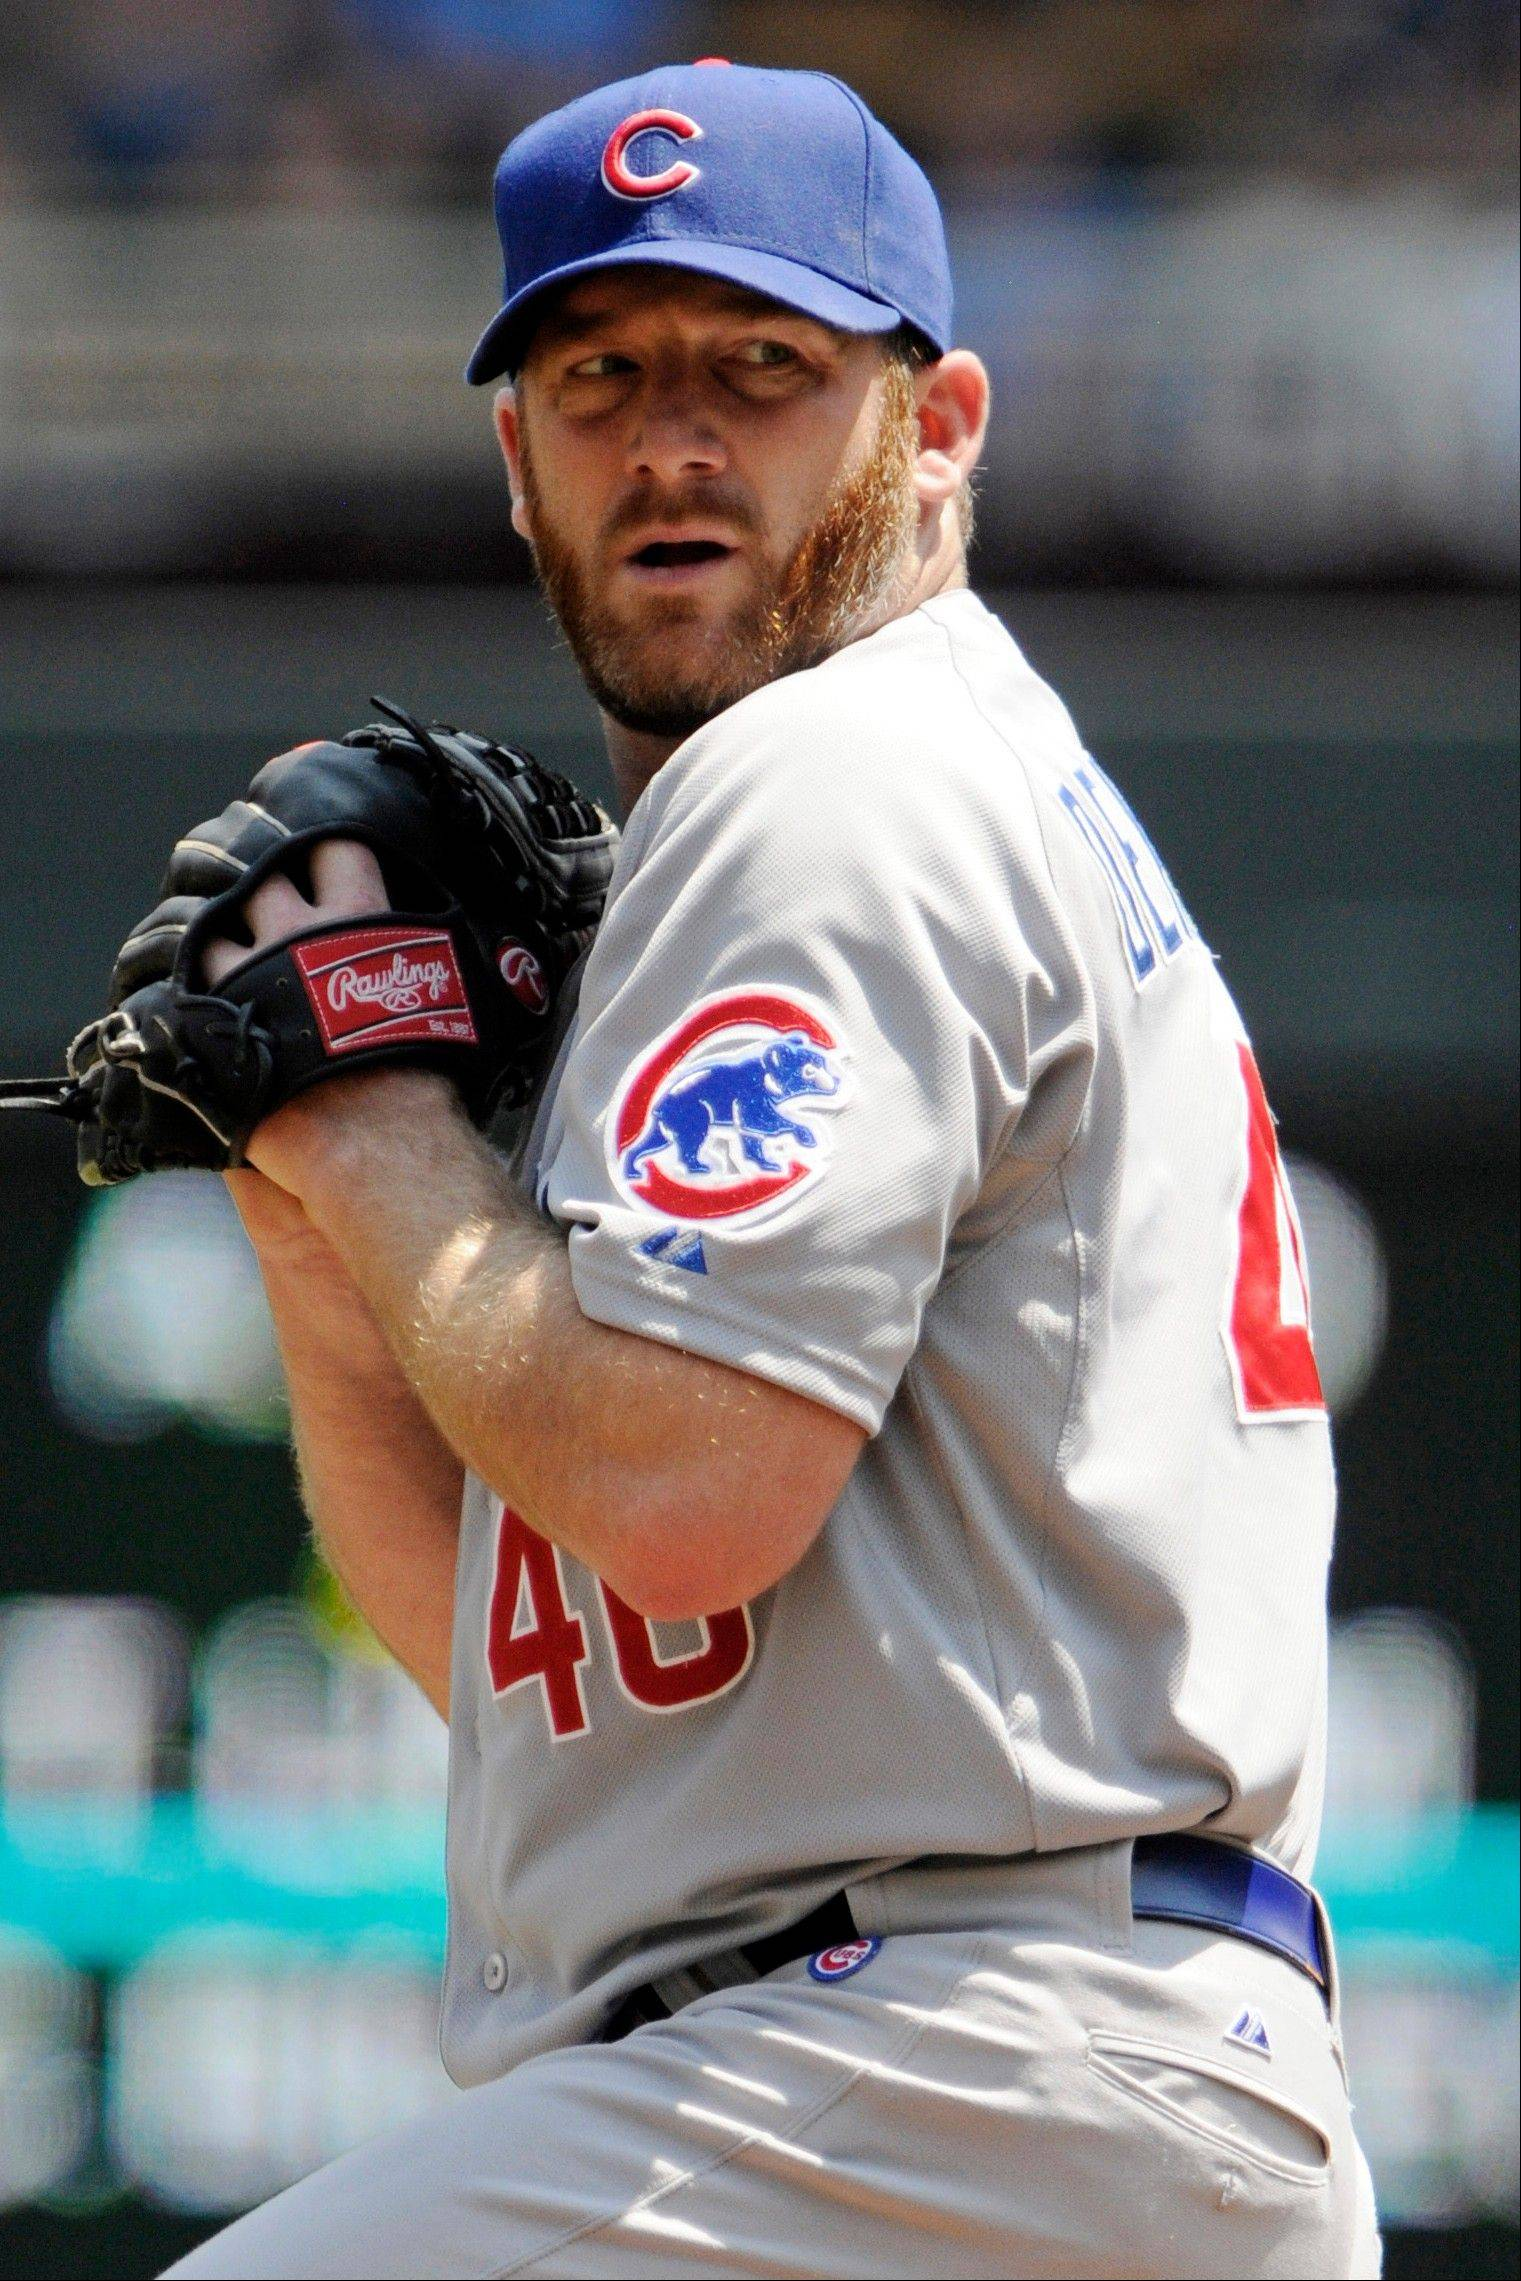 It could be an interesting weekend at Wrigley Field for Cubs starter Ryan Dempster.